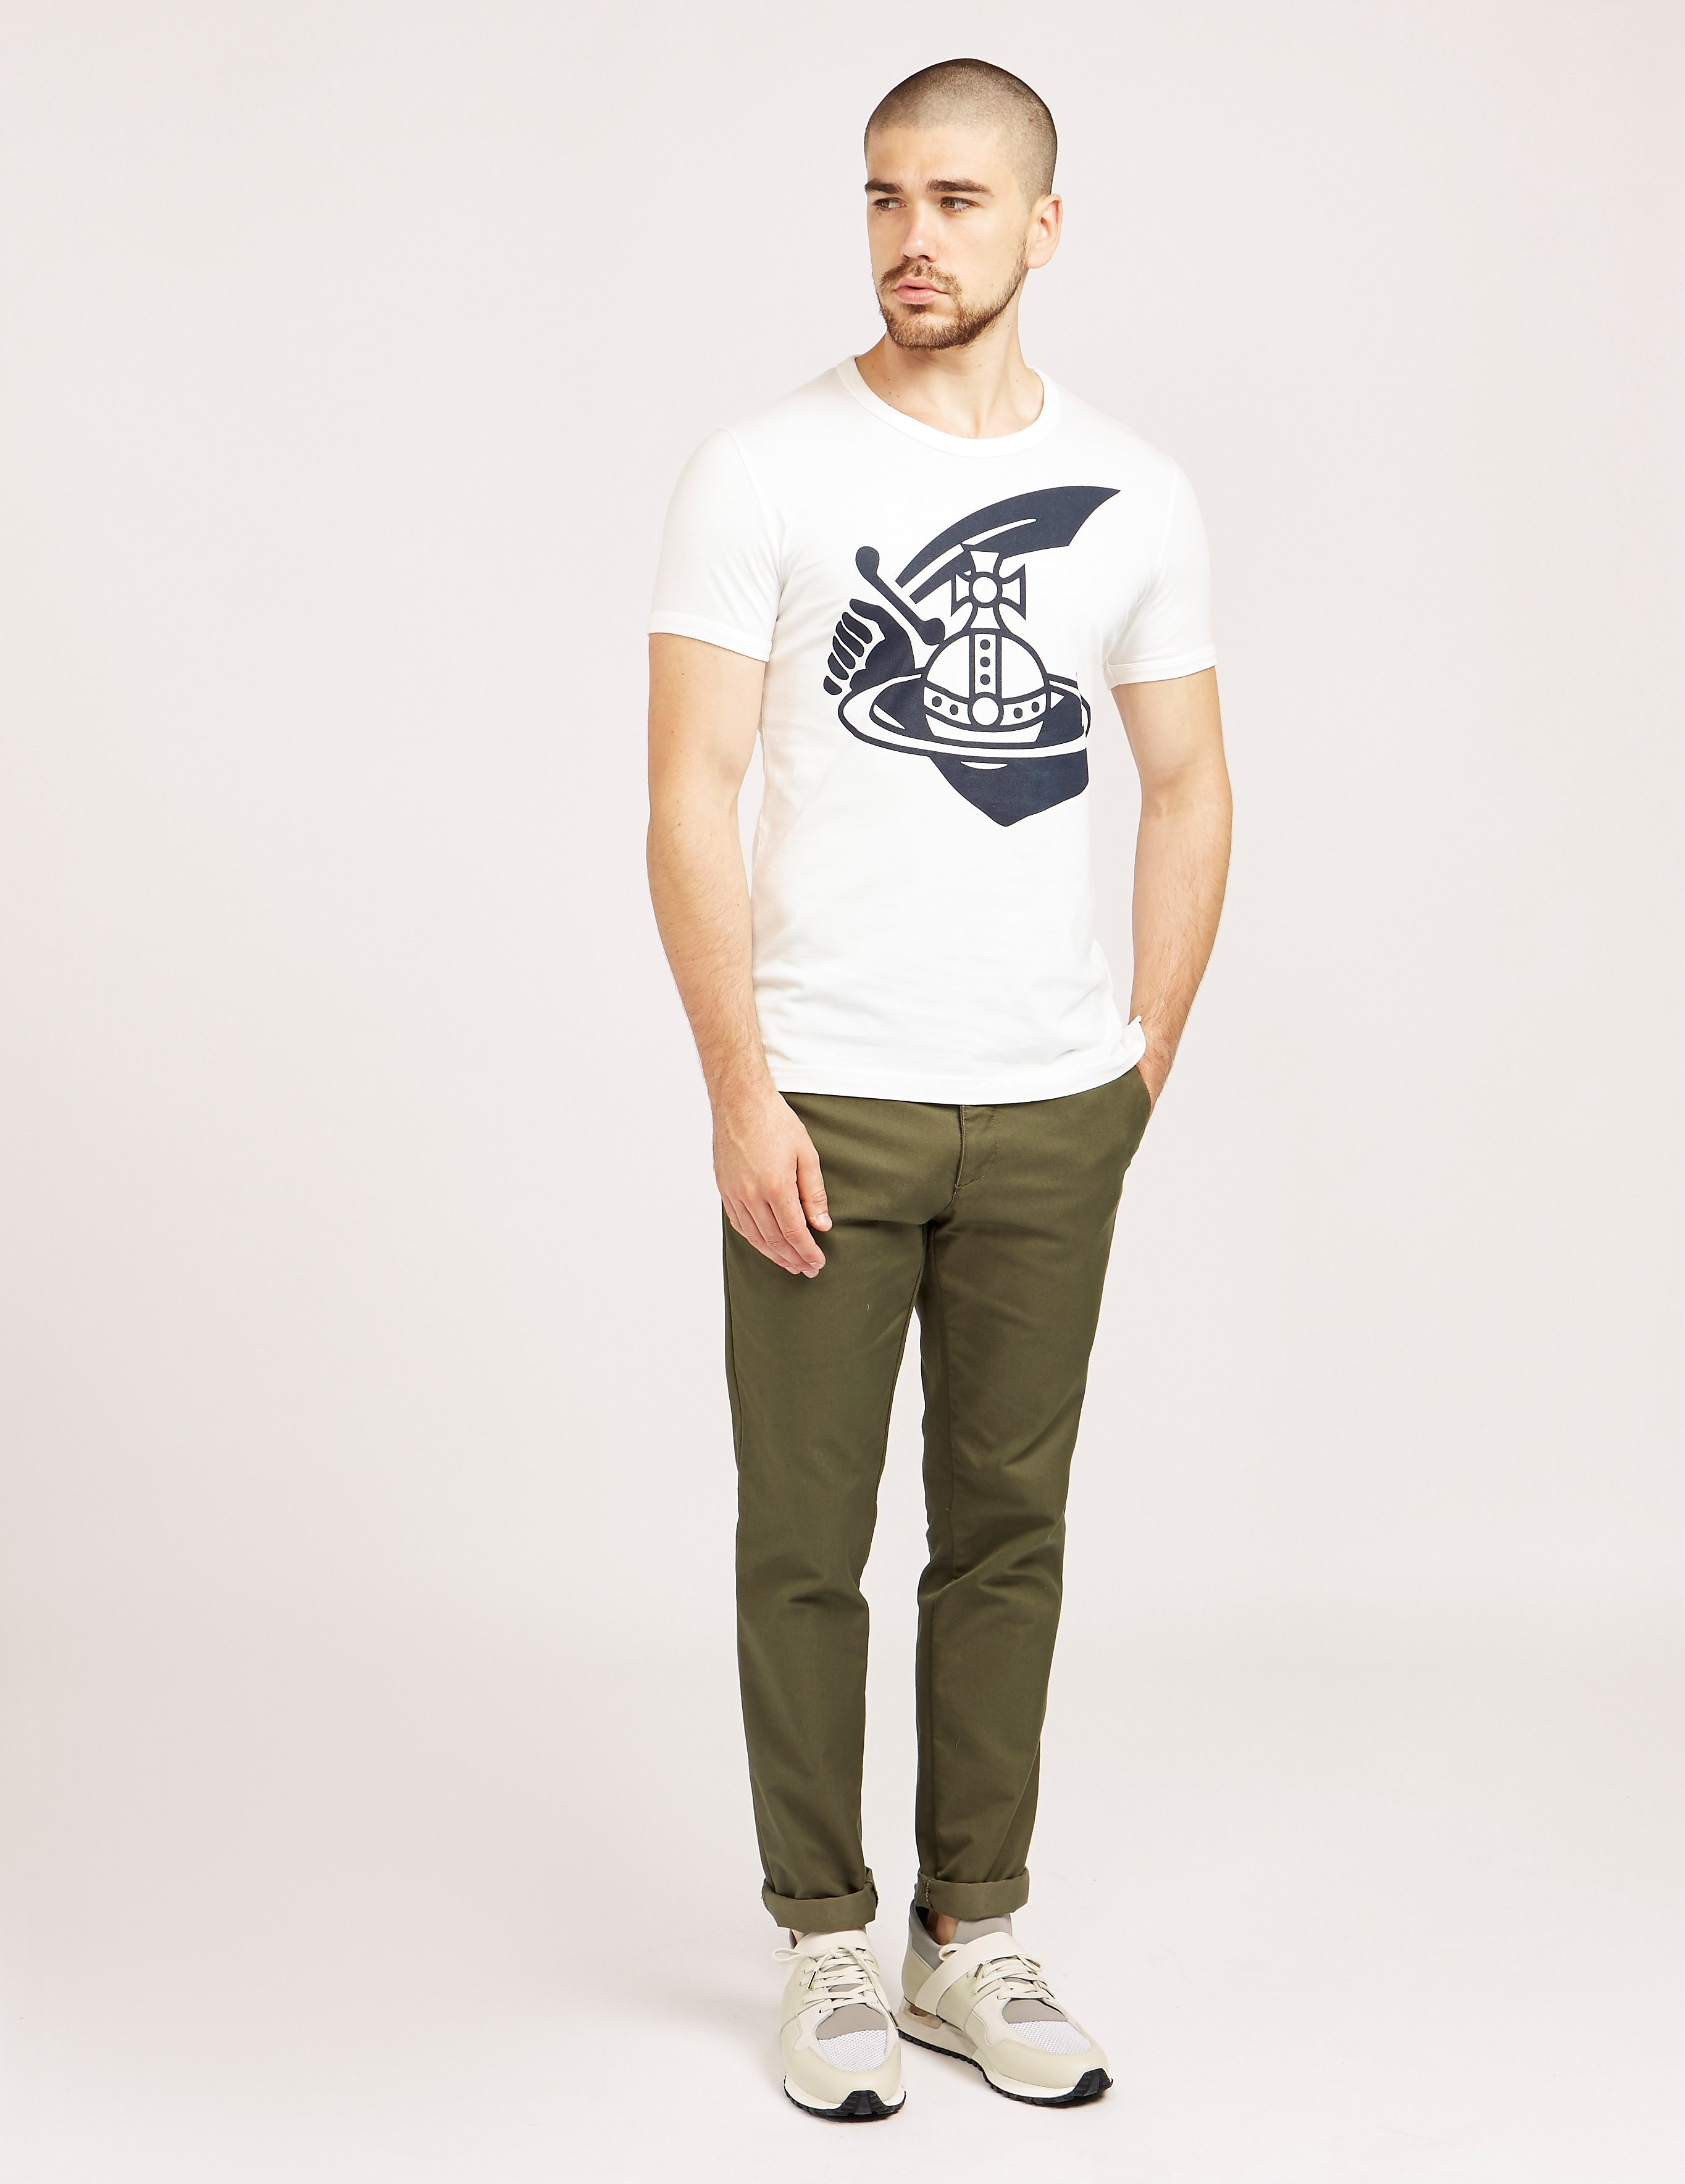 Vivienne Westwood Angolmania Sword Short Sleeve T-Shirt